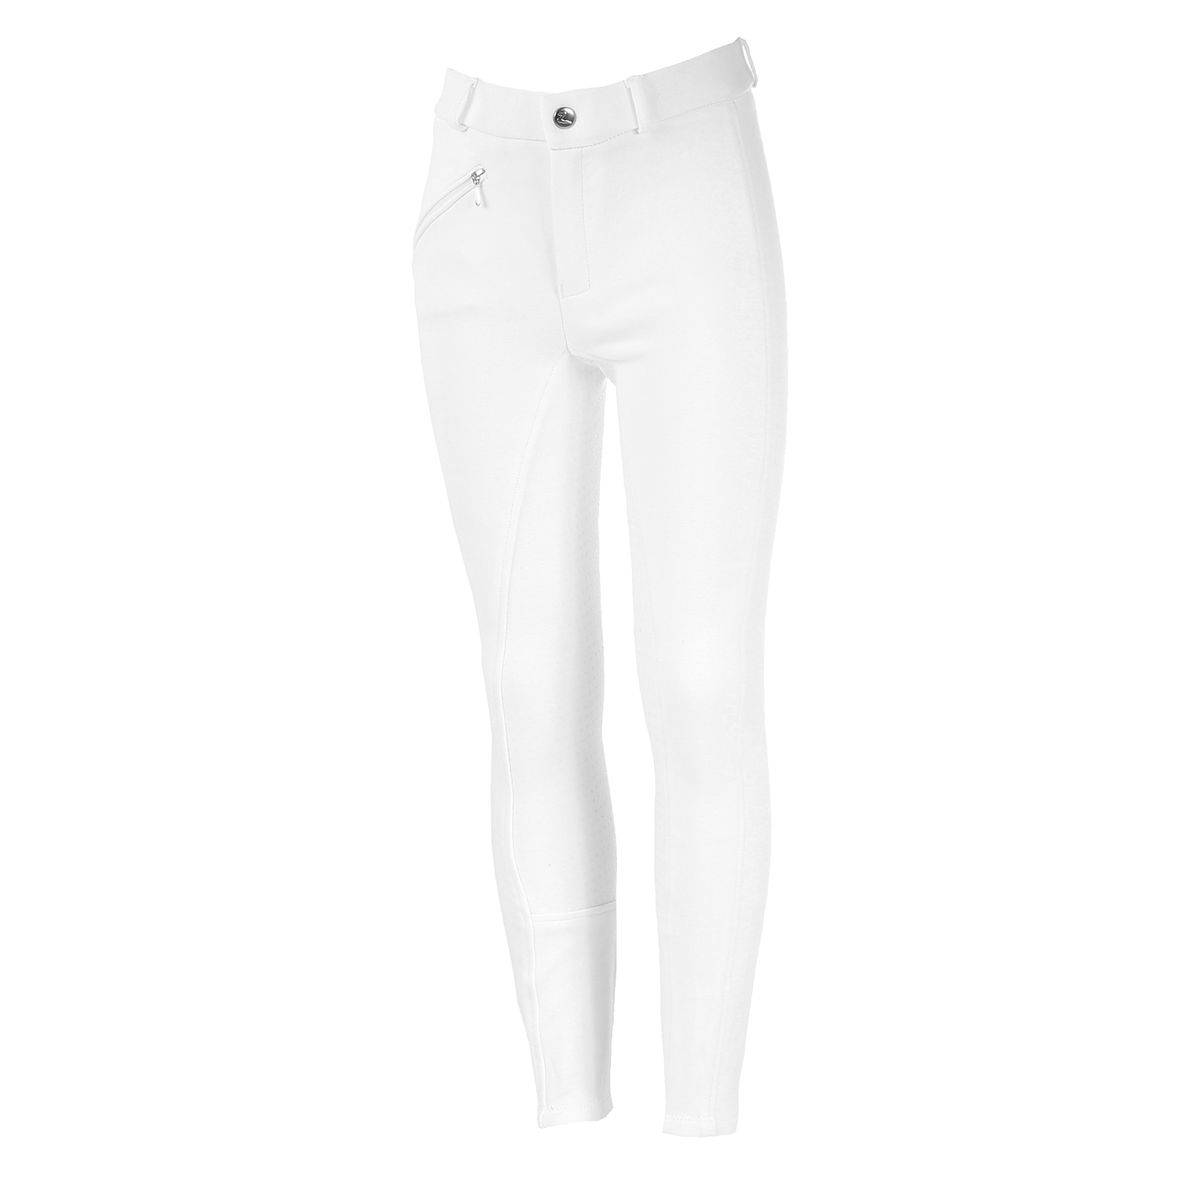 Horze Active Silicone Grip Breeches- Girls, Full Seat